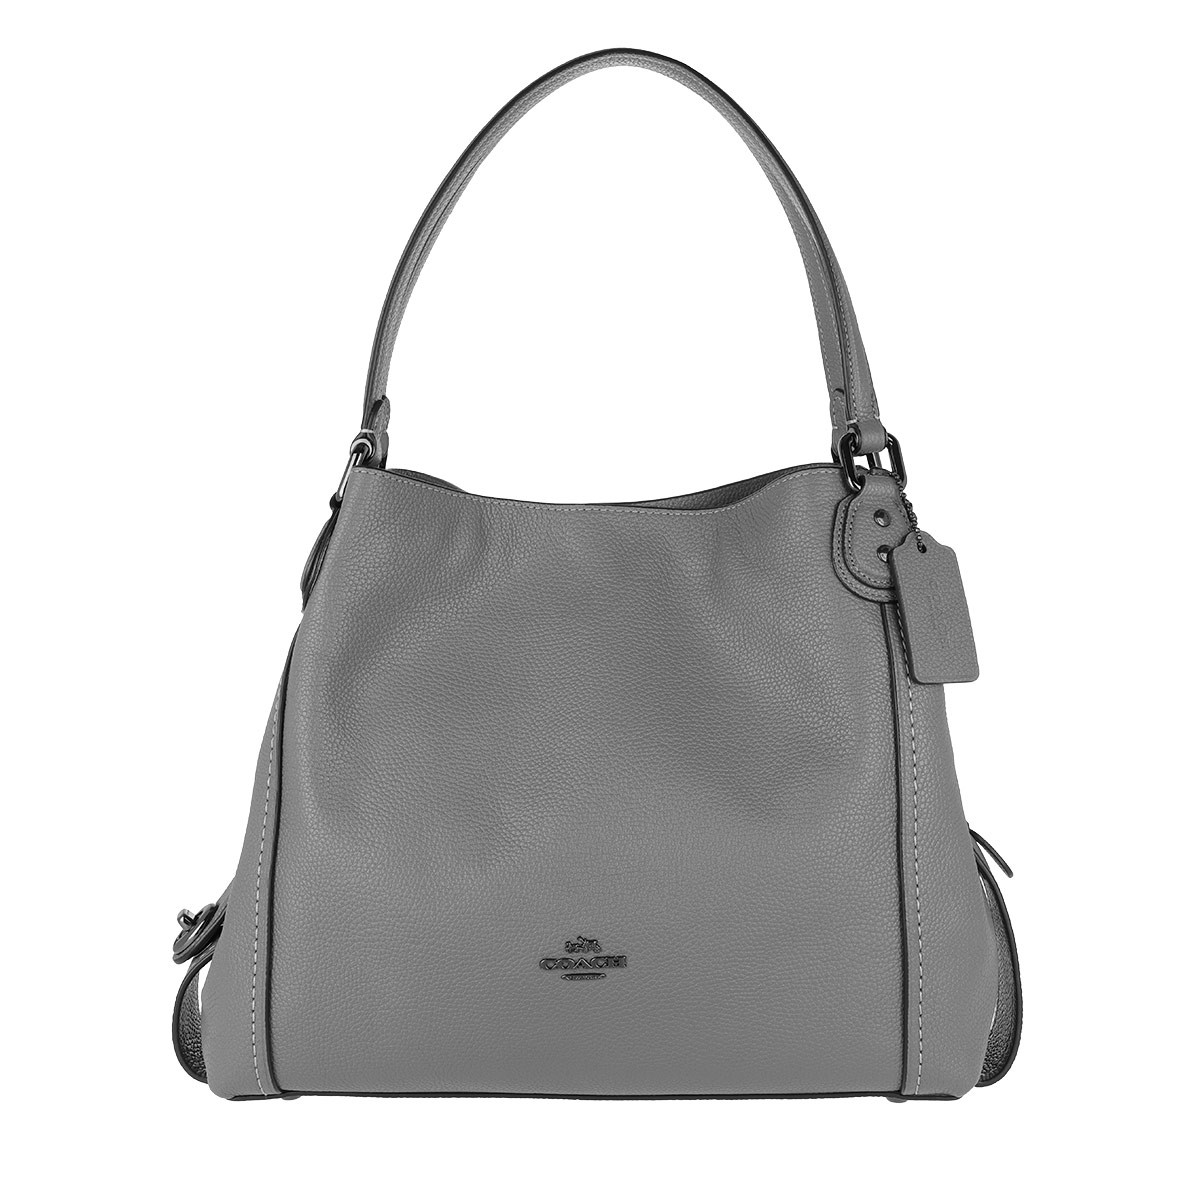 Coach Tote - Polished Leather Edie 31 Shoulder Bag Heather Grey - in grau - für Damen